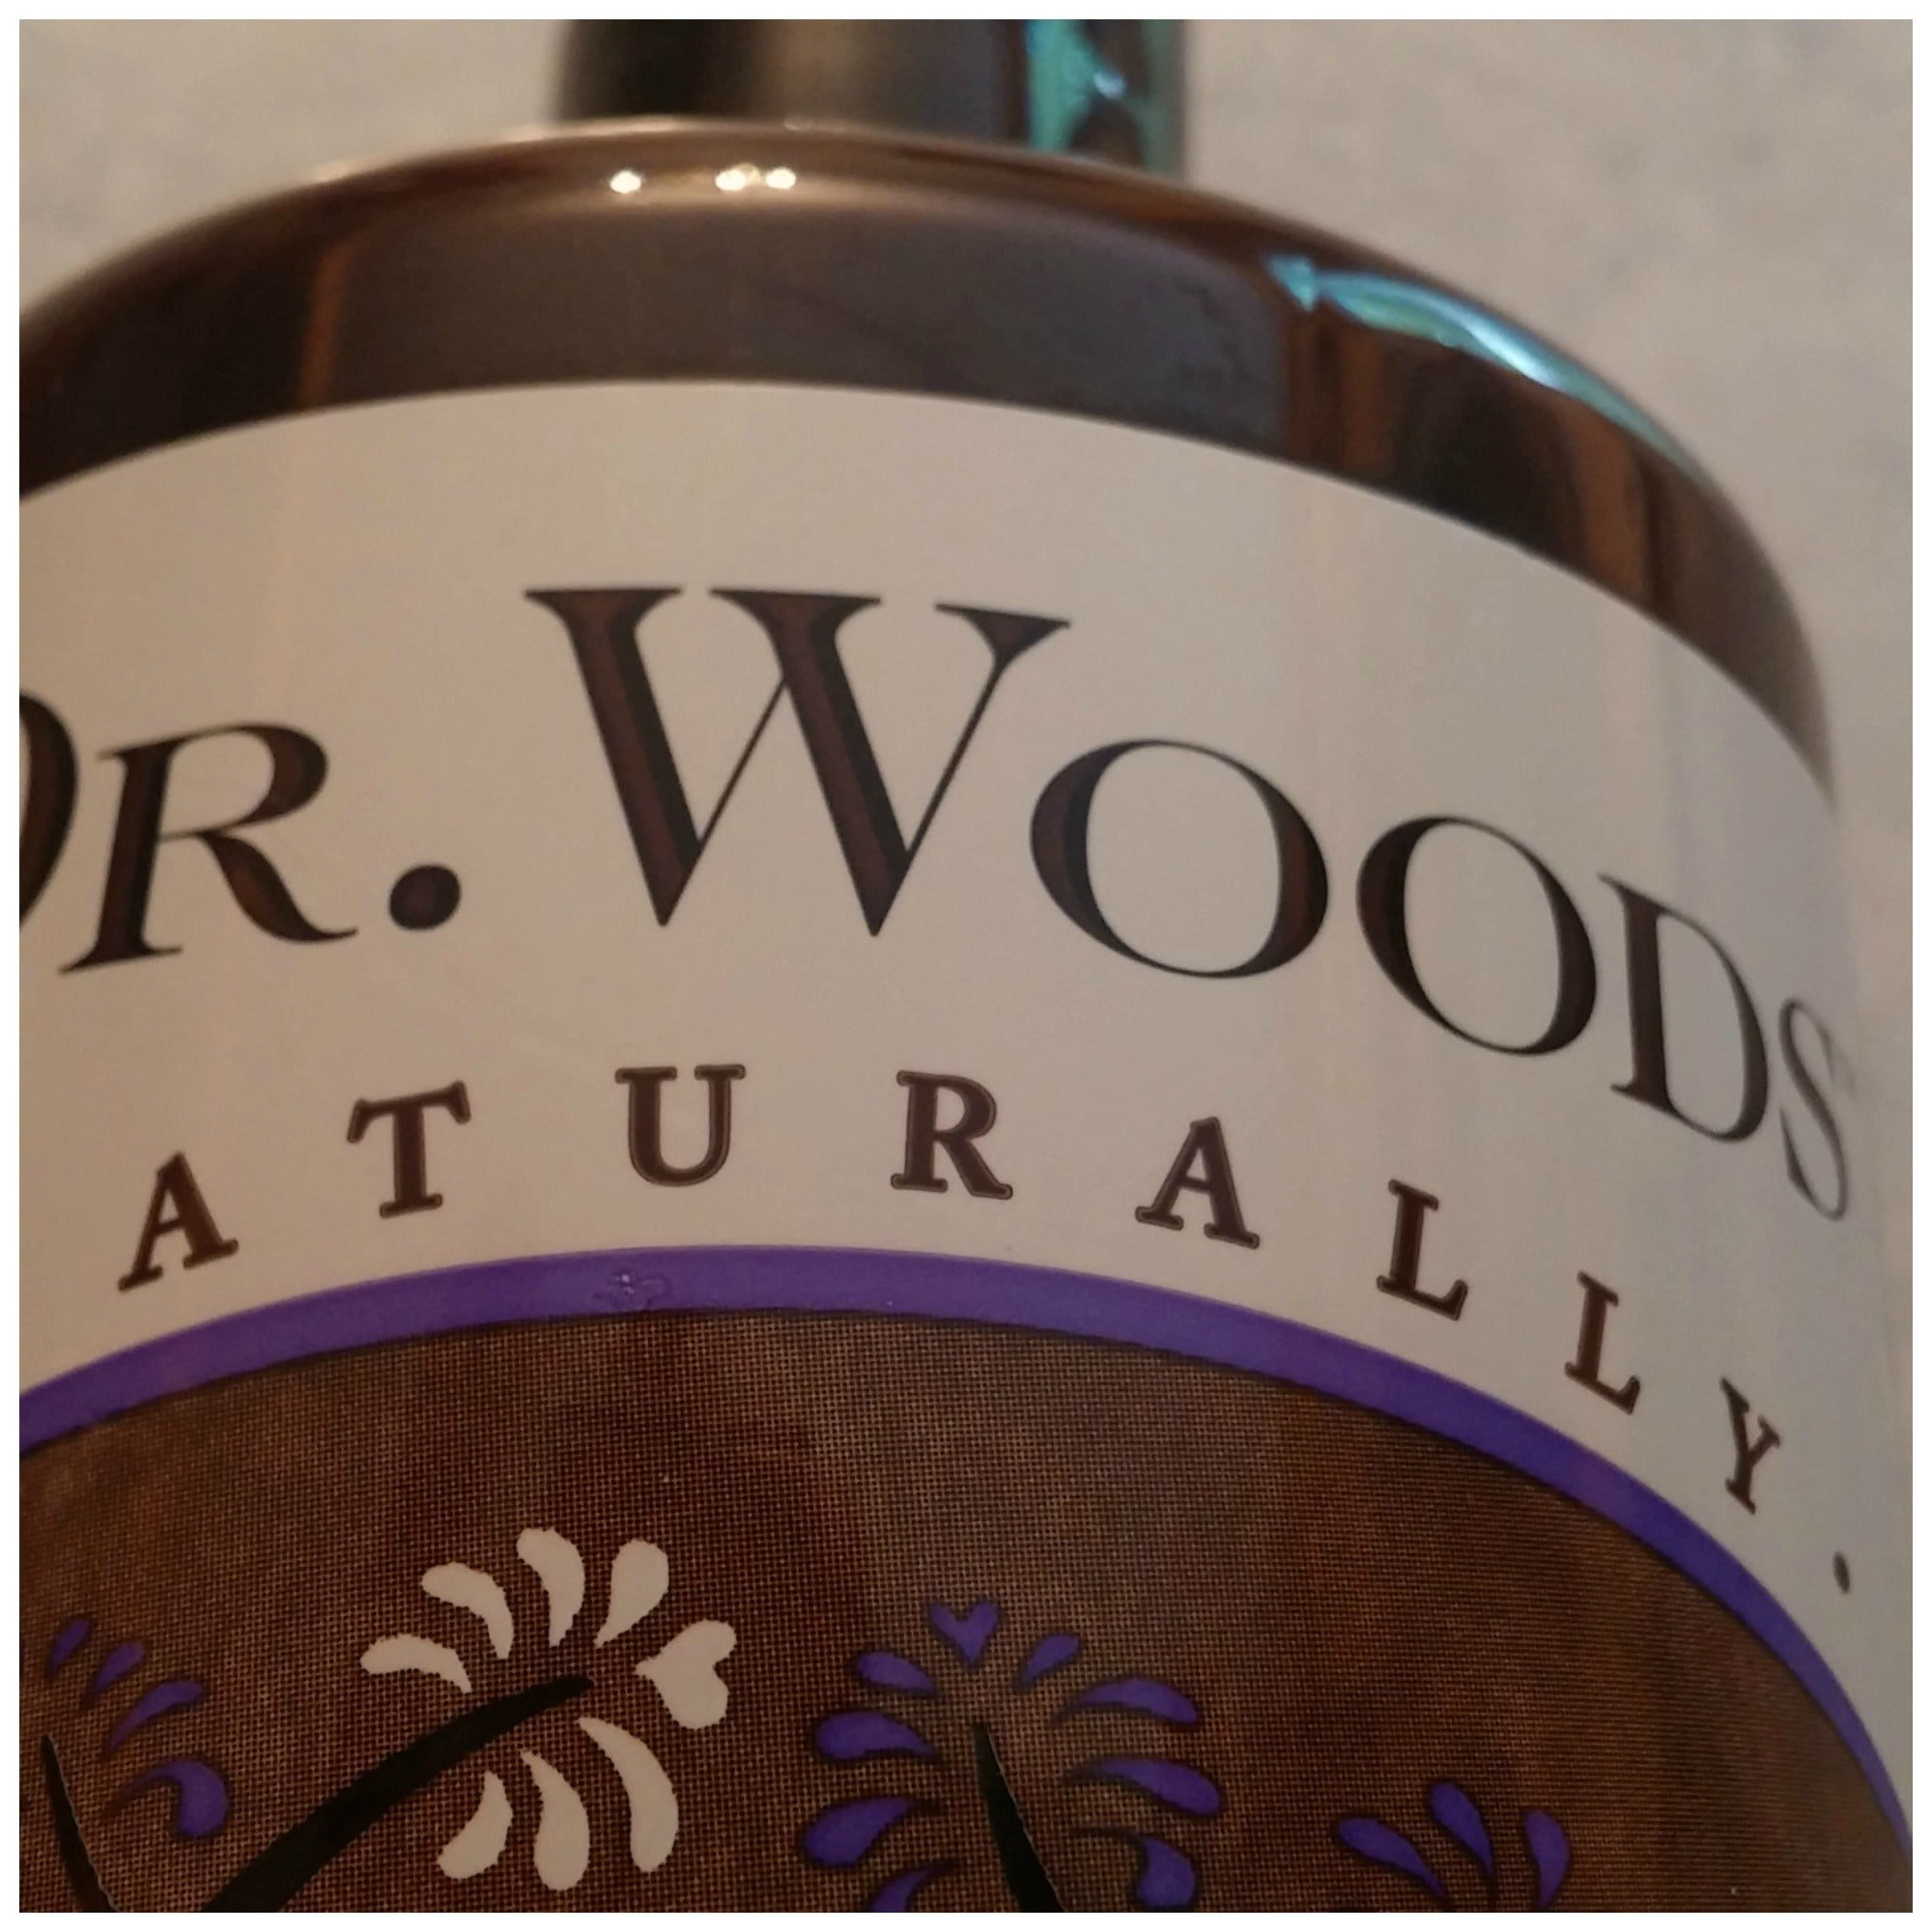 Dr Woods Soap Ingredients - Organic Palace Queen